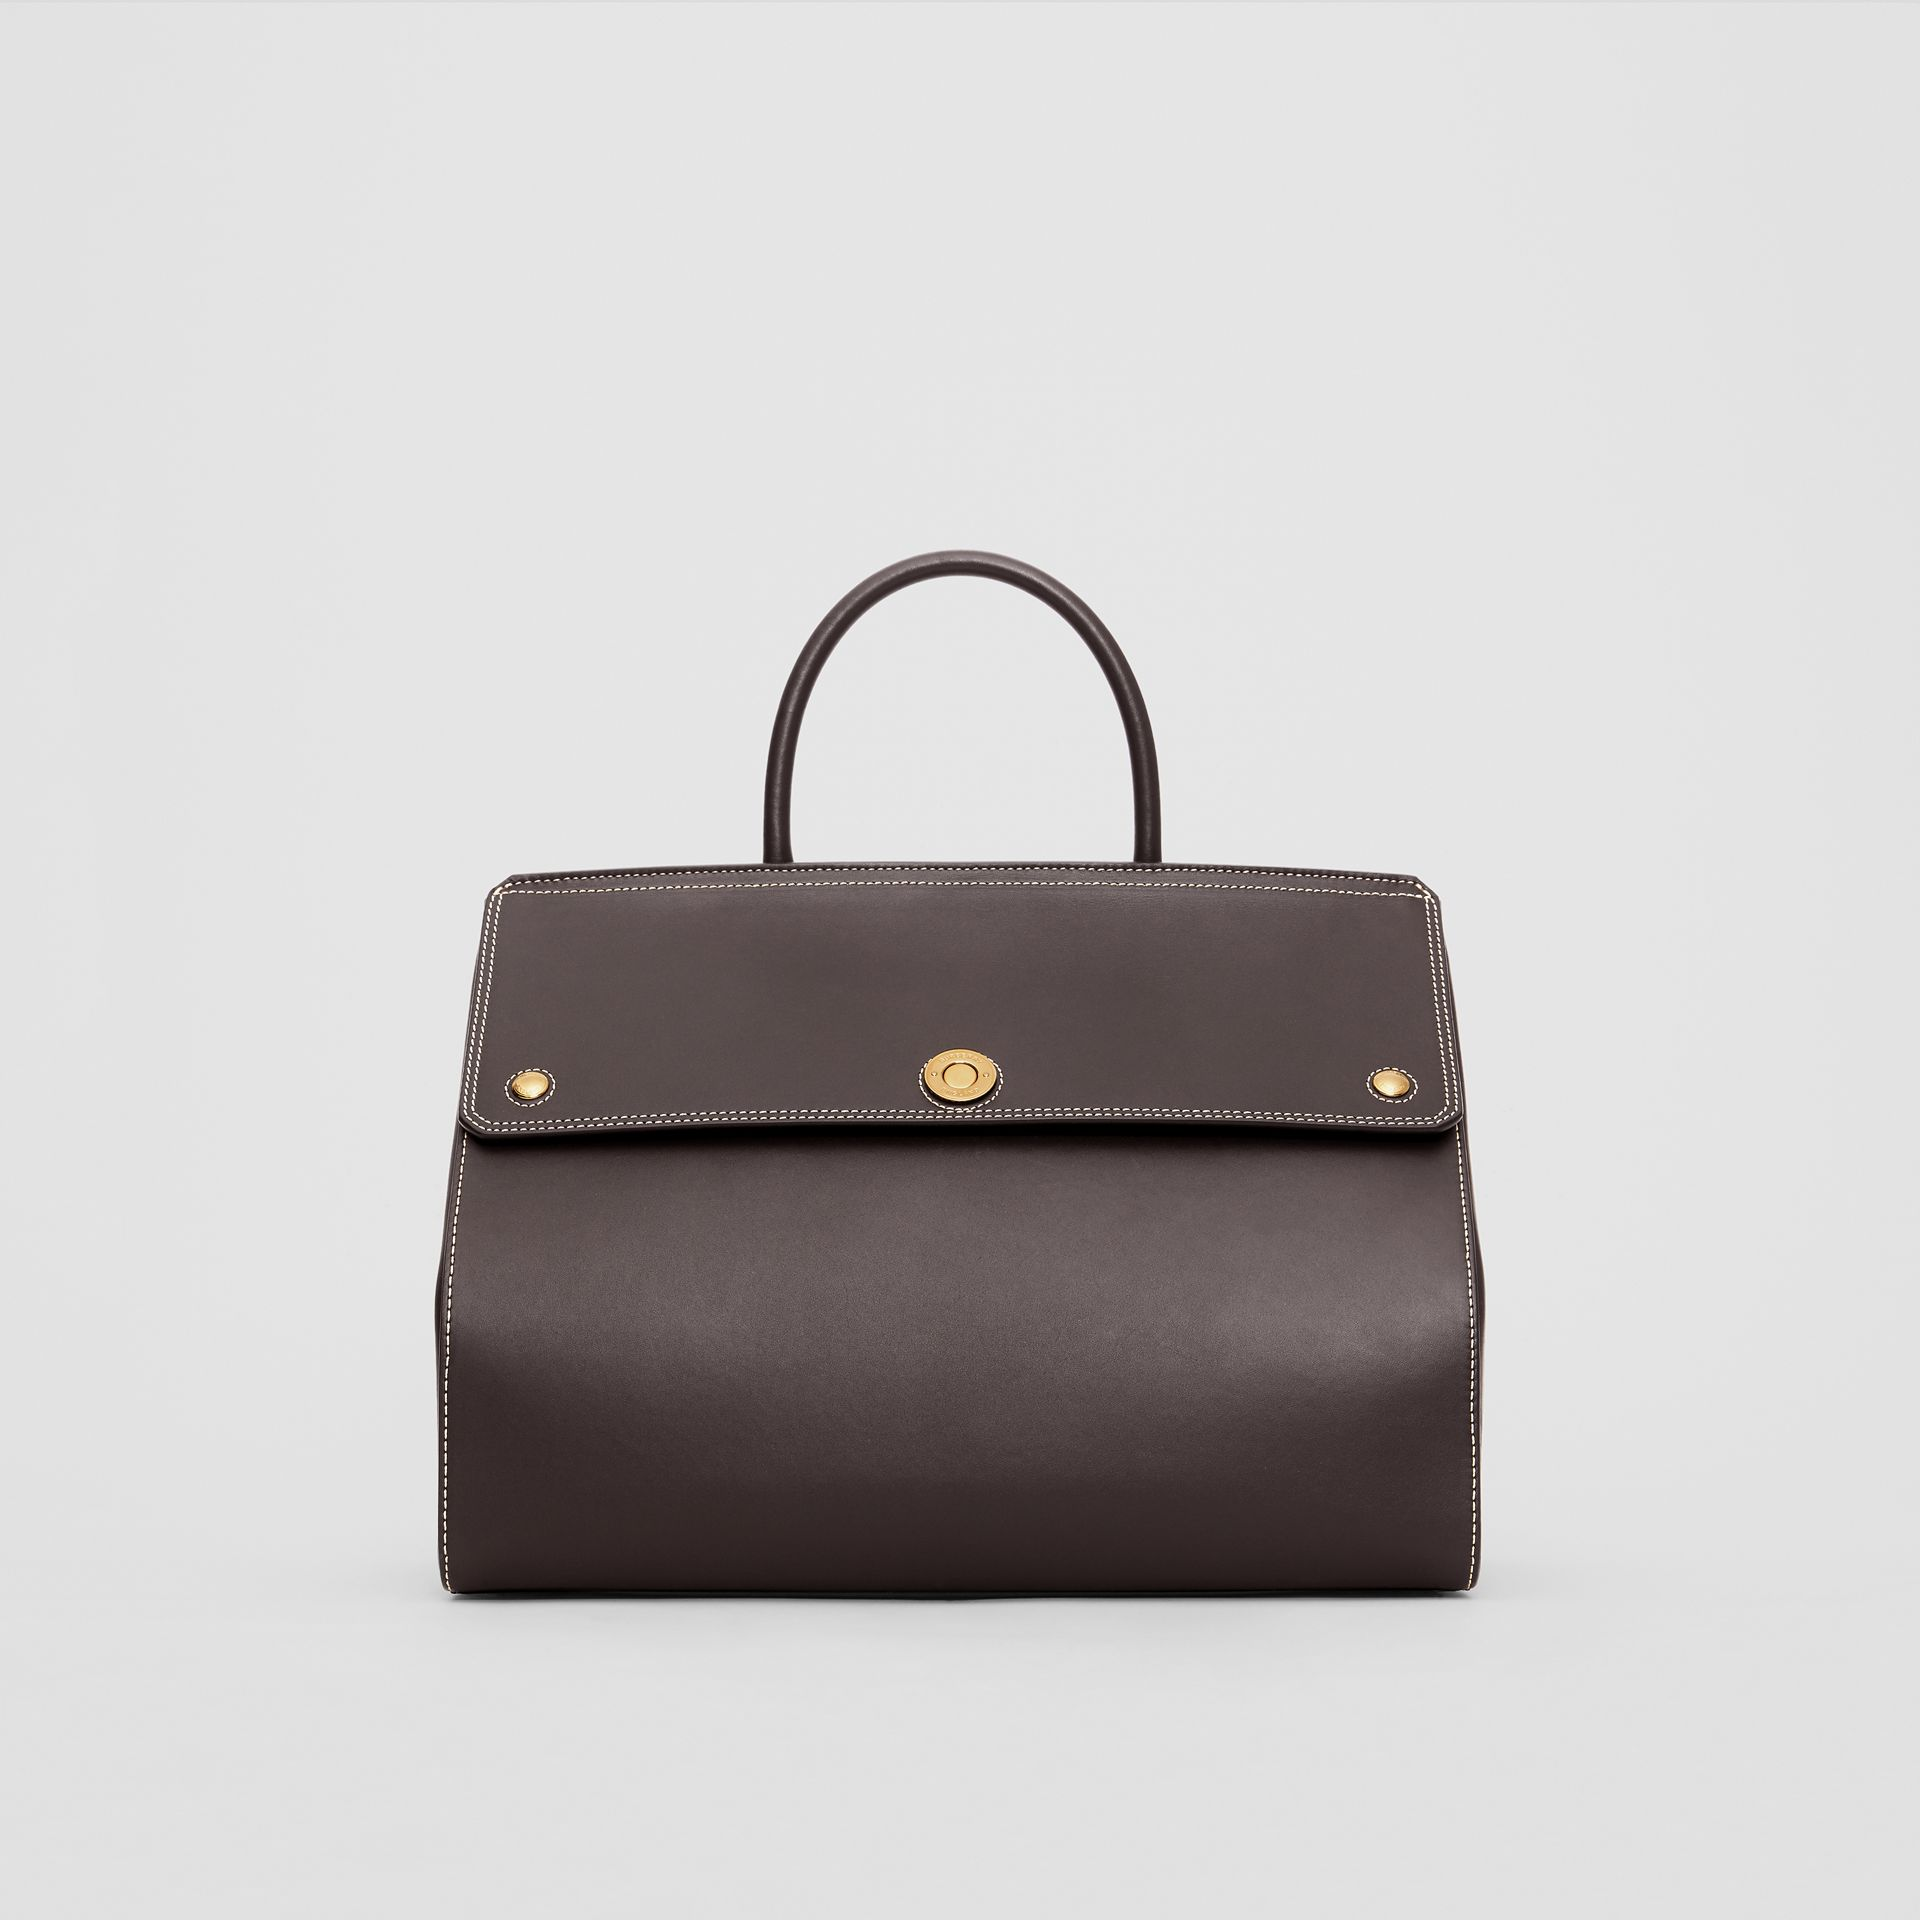 Medium Leather Elizabeth Bag in Coffee - Women | Burberry - gallery image 0